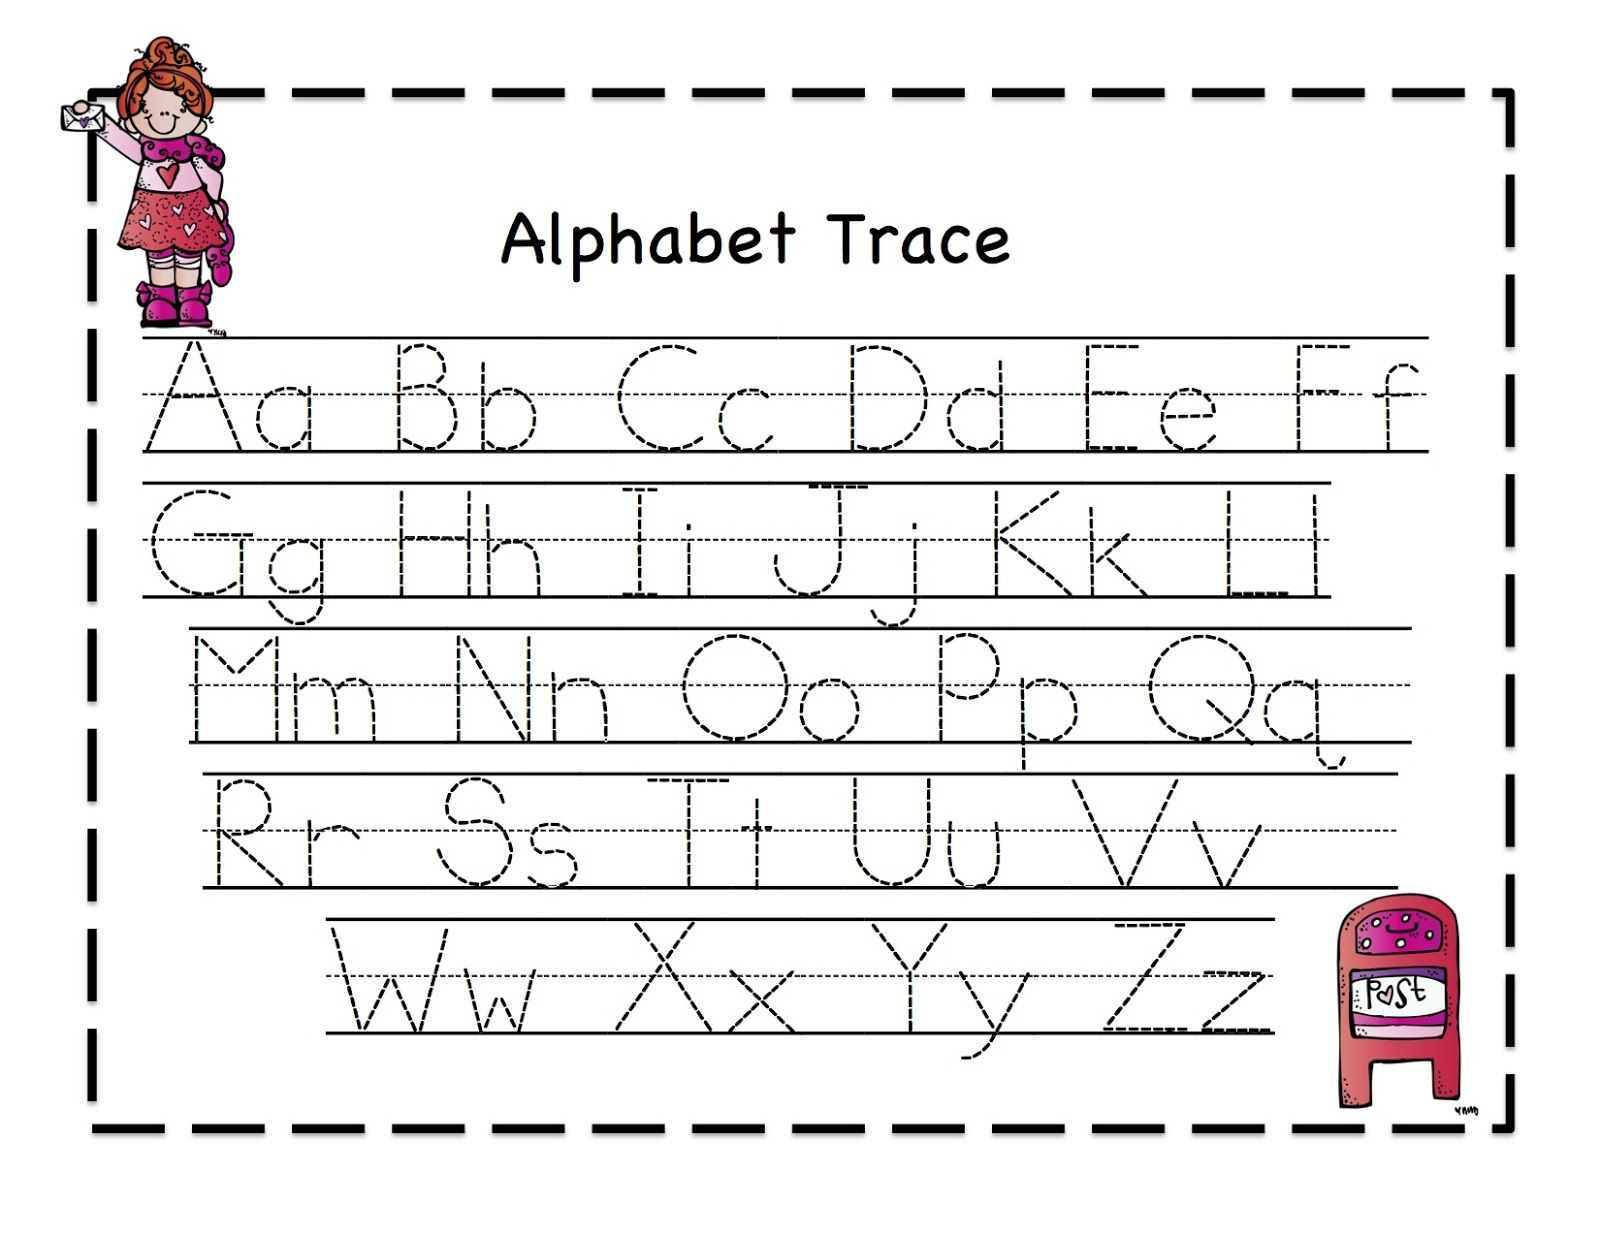 Worksheets Tracing Alphabet Worksheets preschool printables valentine february ideas pinterest letter tracing worksheetsprintable alphabet